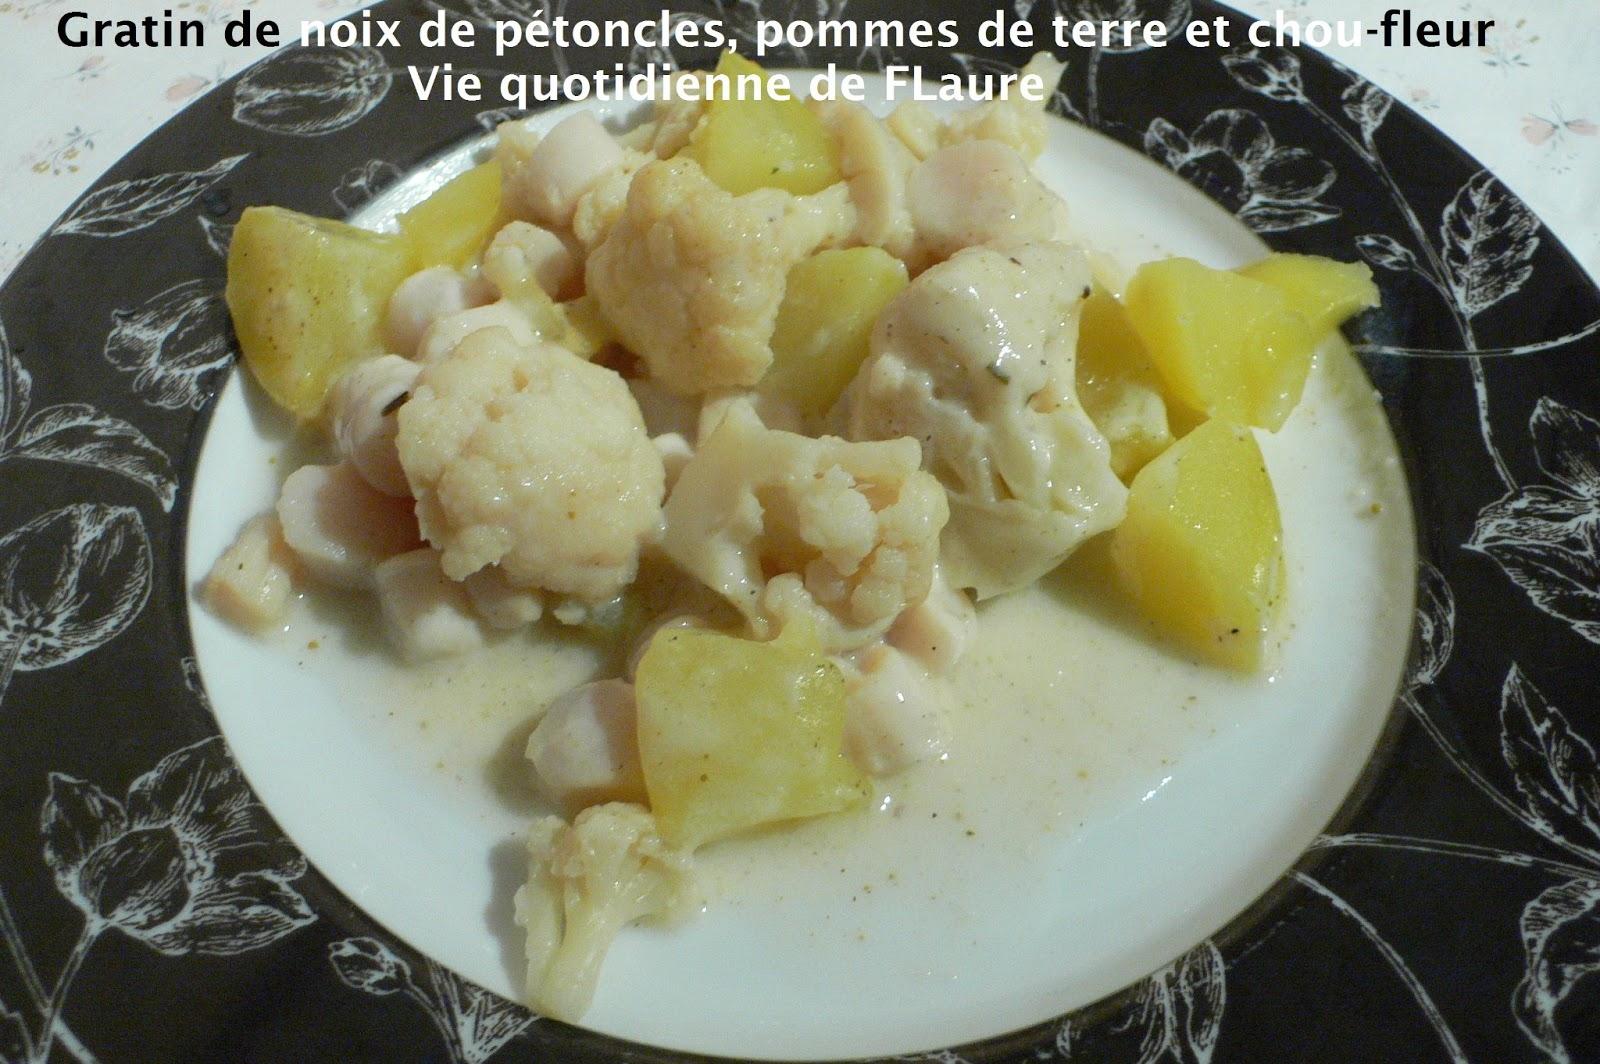 gratin de noix de p toncles pommes de terre et chou fleur blogs de cuisine. Black Bedroom Furniture Sets. Home Design Ideas